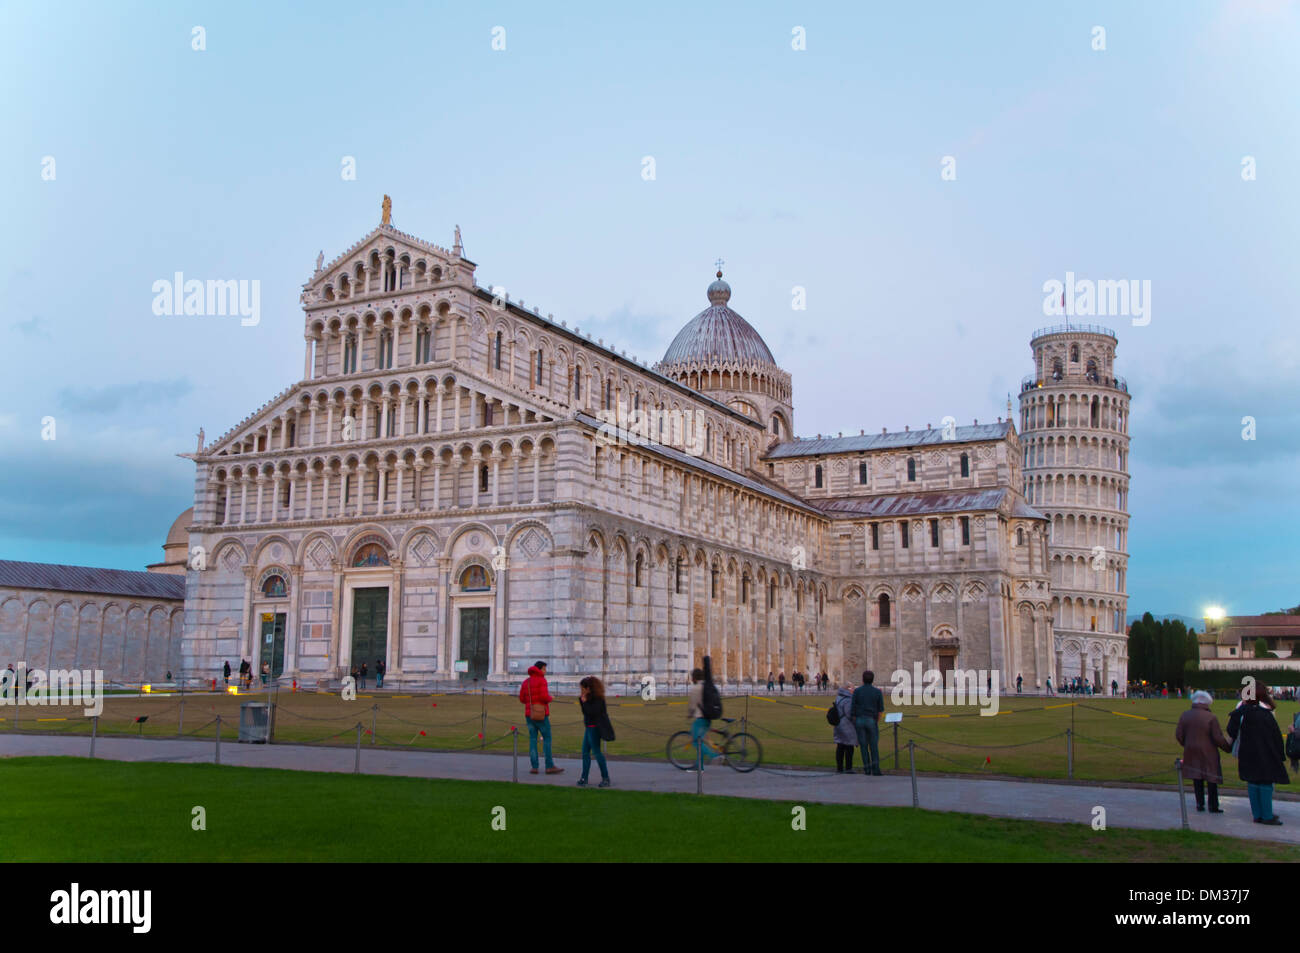 Duomo the Cathedral and the leaning tower at Campo dei Miracoli the field of miracles Pisa city Tuscany region Italy Stock Photo